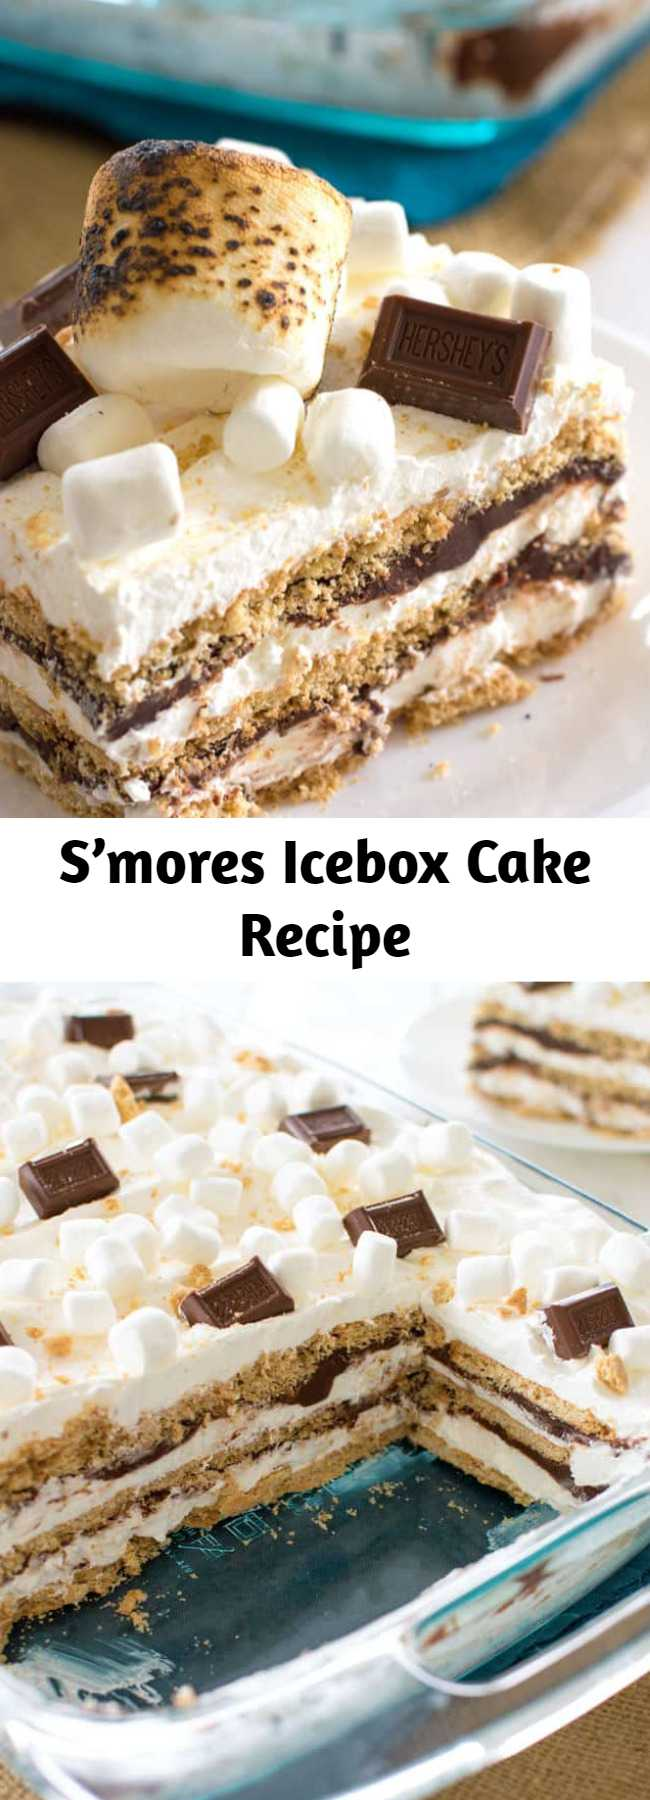 Bring the s'mores indoors with this S'mores Icebox Cake to feed a crowd. With layers of graham crackers, marshmallow whipped cream, and chocolate ganache I guarantee everyone will be clamoring for s'more! #smores #hersheys #iceboxcake #cake #summer #dessert #marshmallows